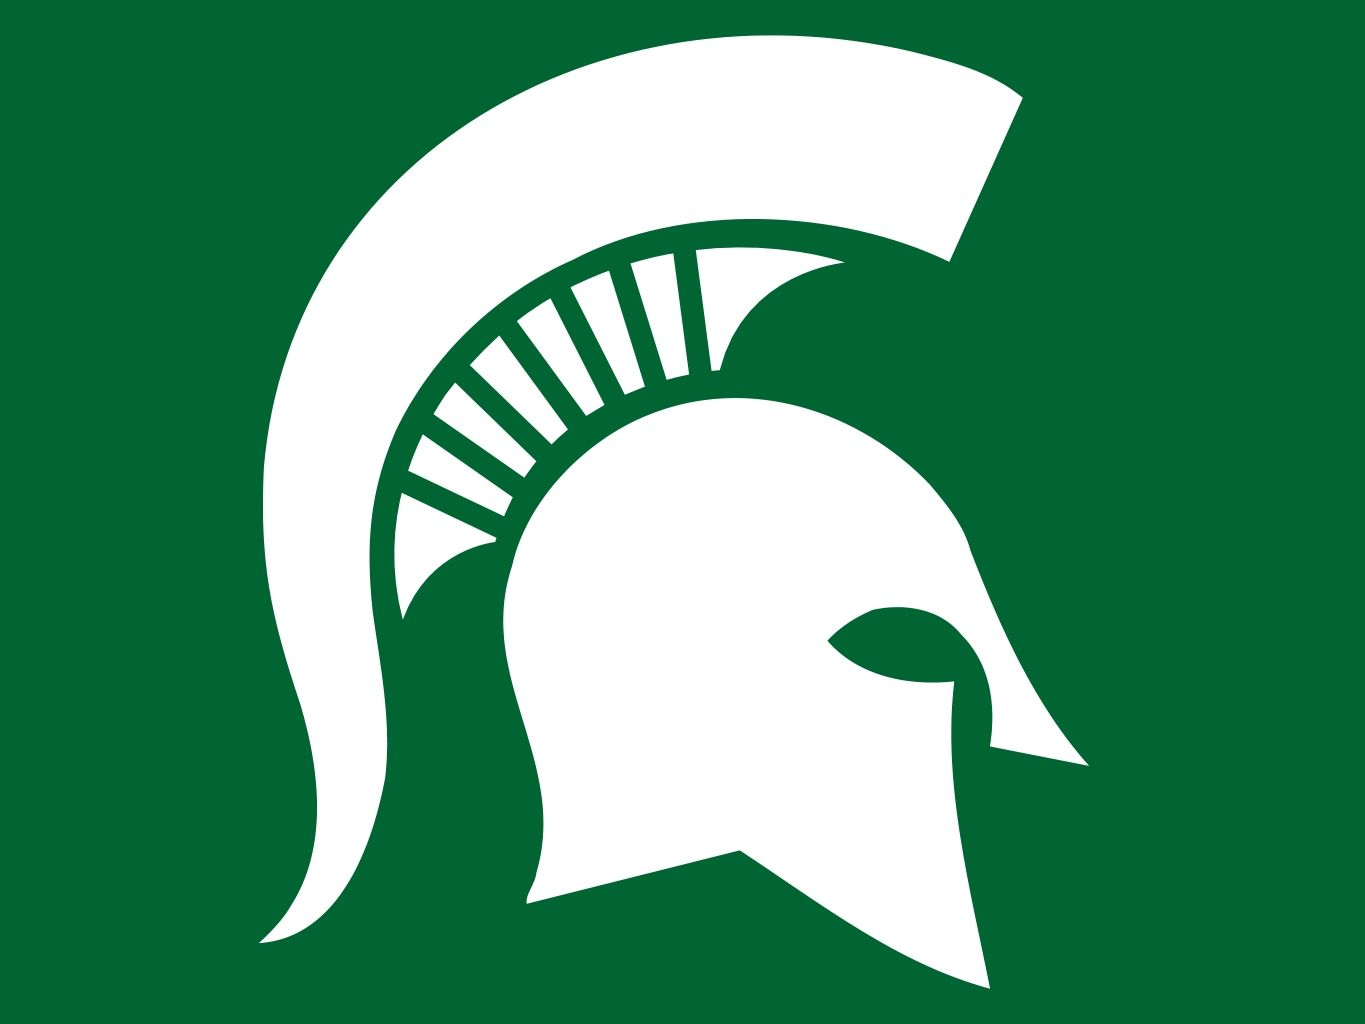 small resolution of  introwbi at msu michigan spartans michigan state university university logo top 10